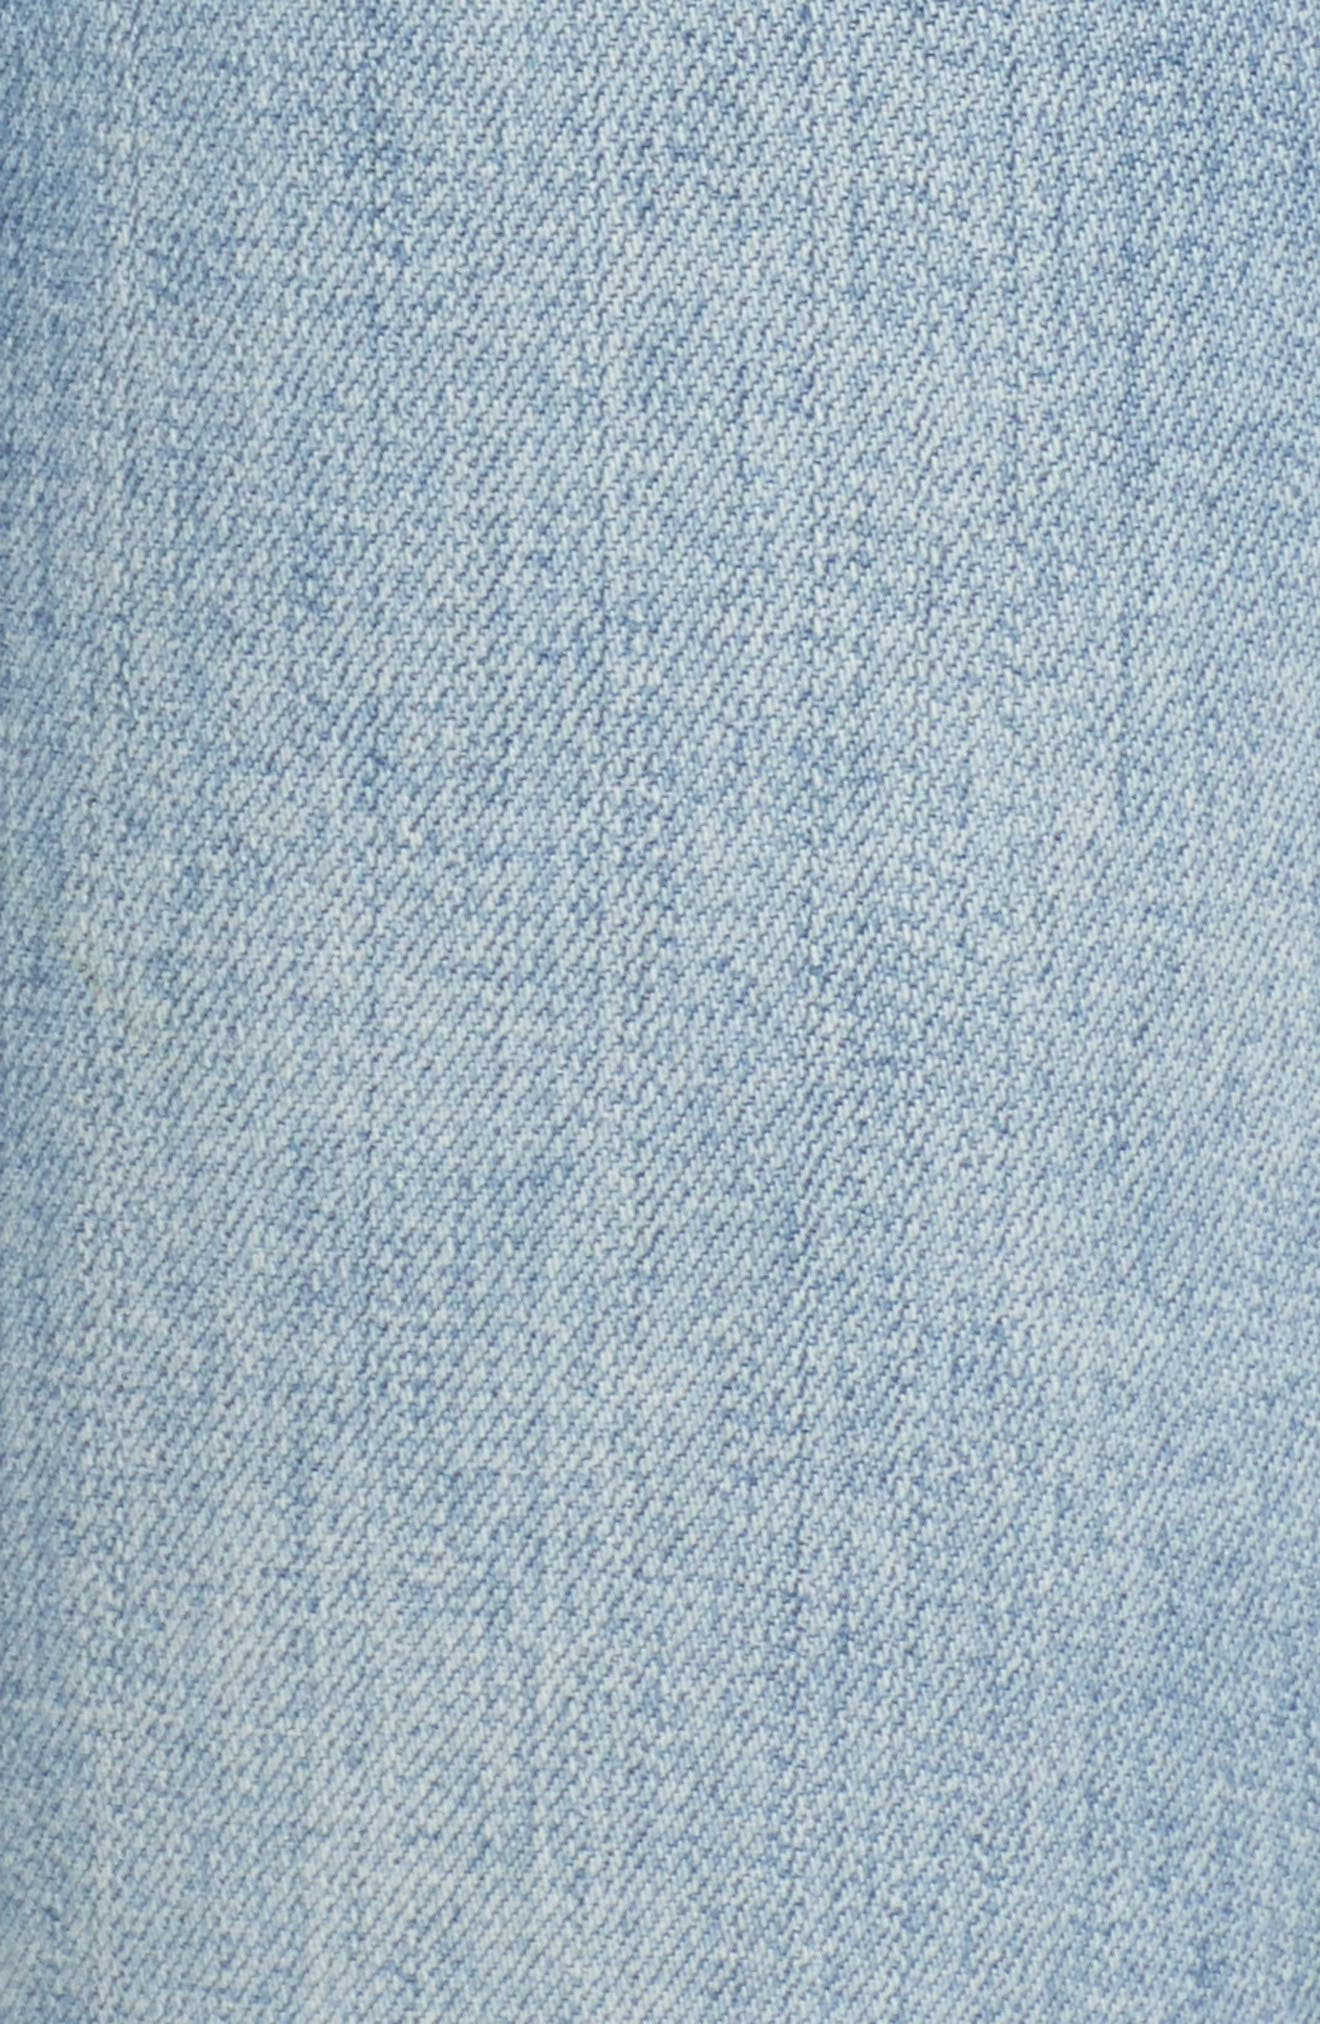 STS Blue Emma Ripped Ankle Skinny Jeans,                             Alternate thumbnail 6, color,                             Nortan W/ Lt Base